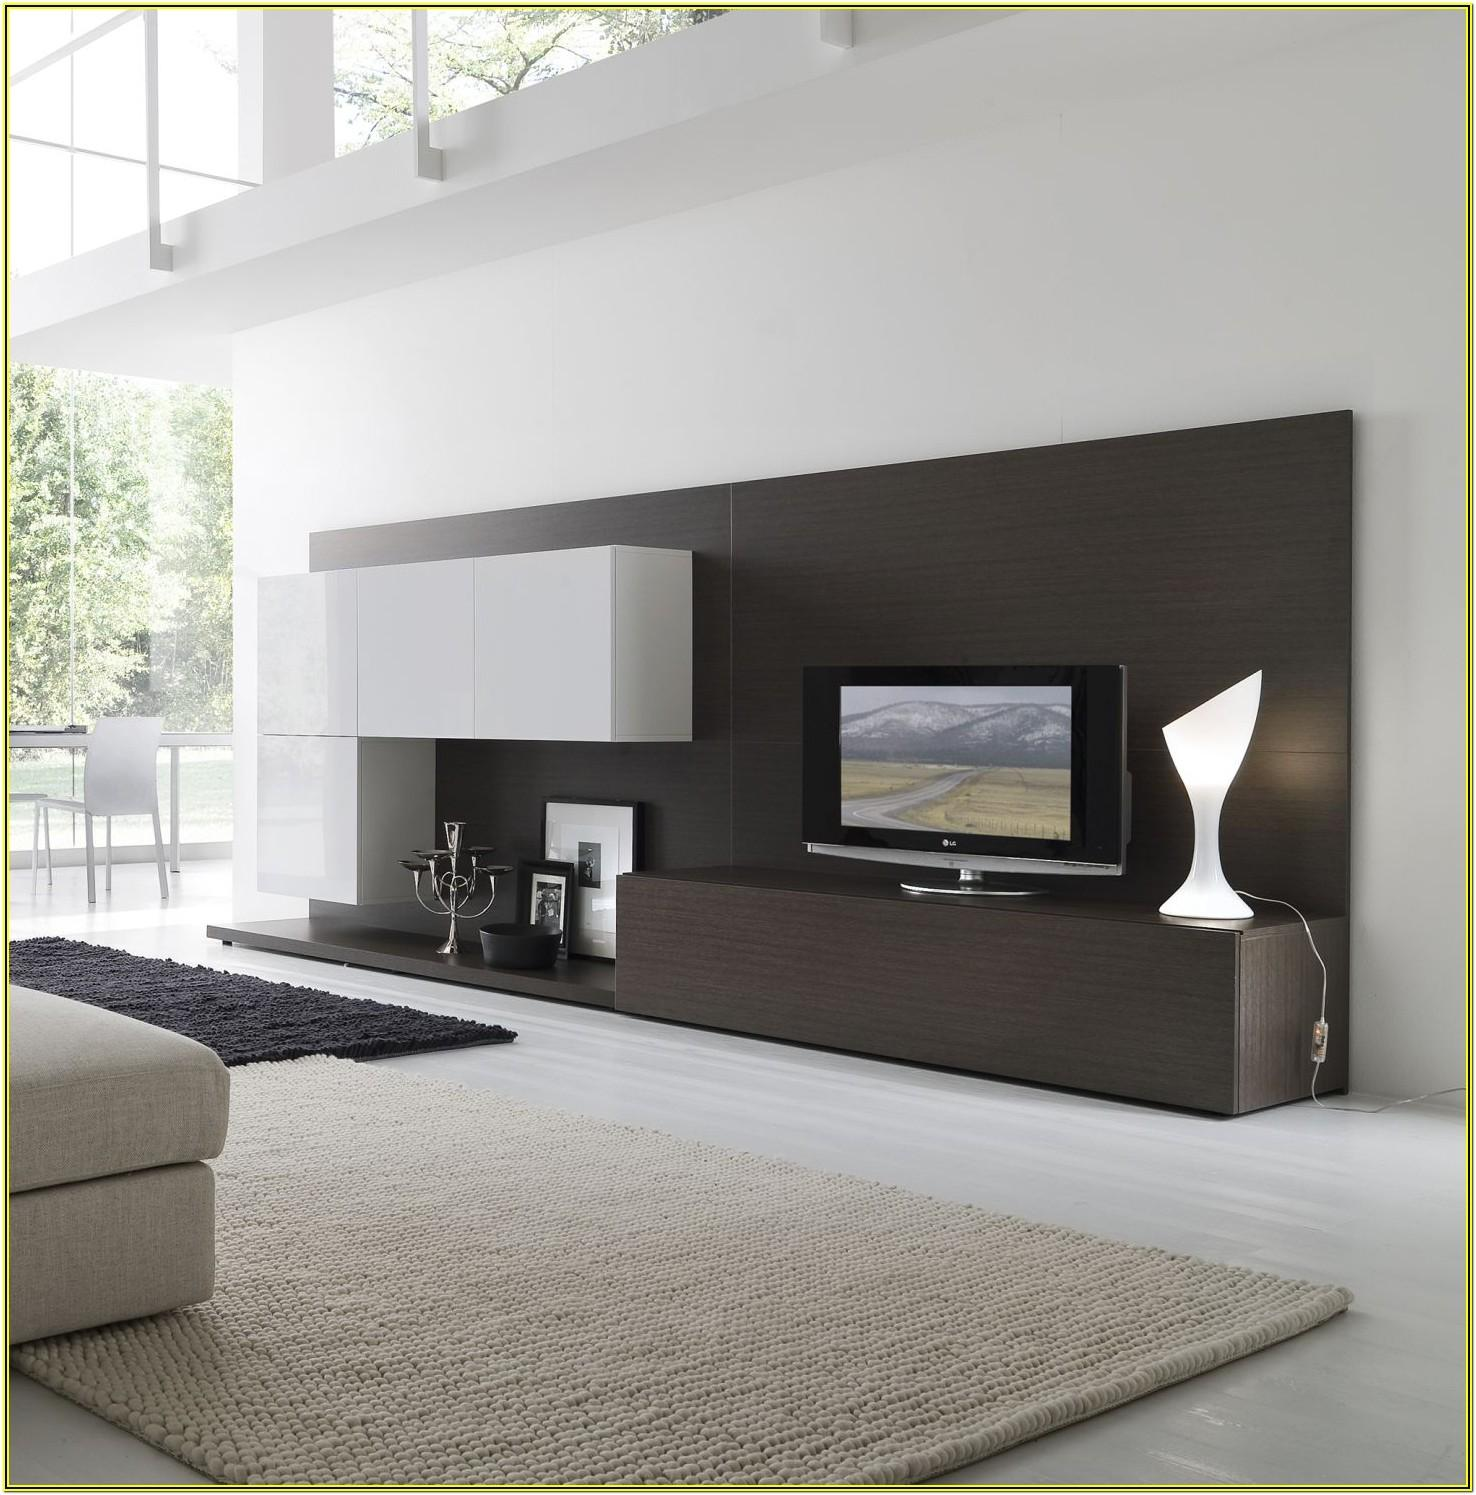 Interior Design Living Room Layout Ideas With Tv